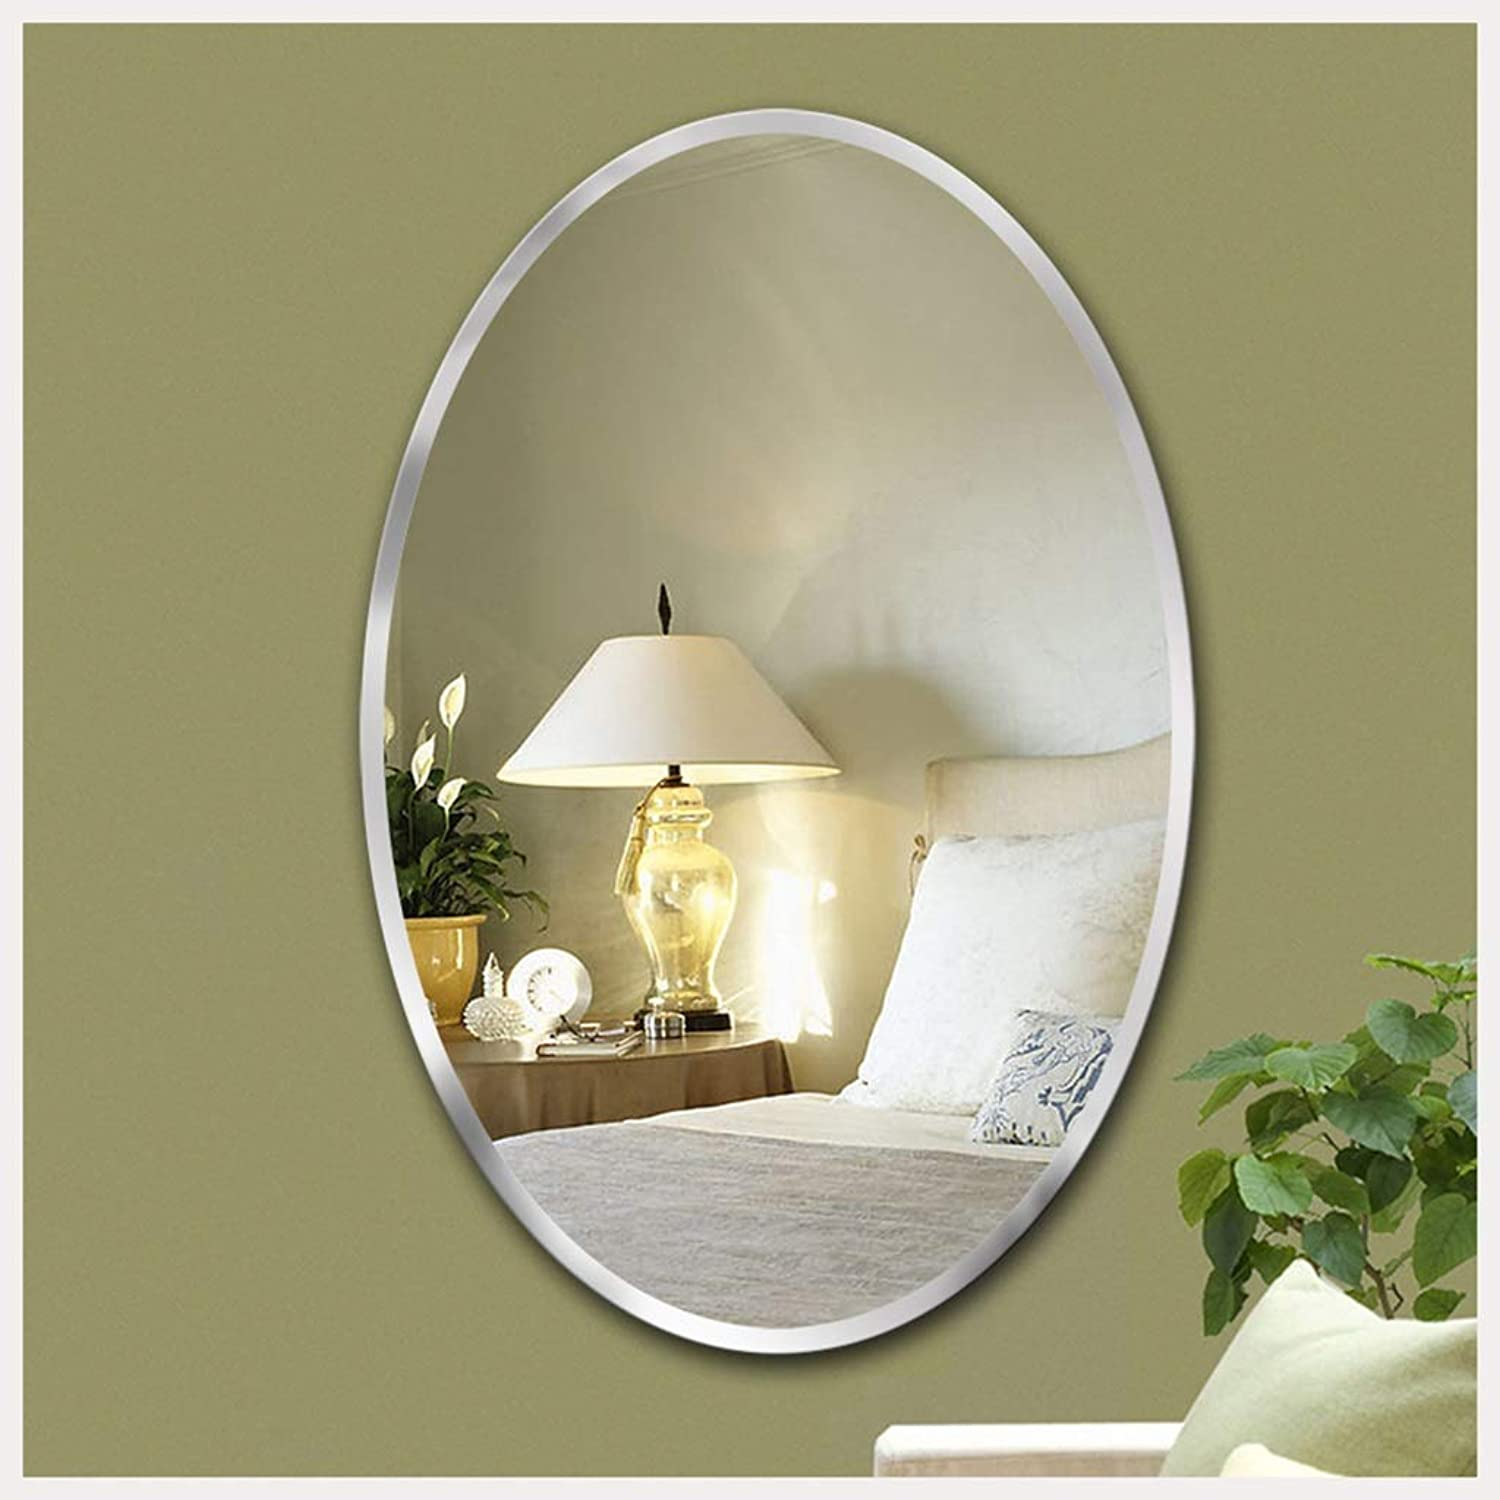 YYF Frameless Elliptical Mirror European Dressing Wall Hanging Bathroom Living Room 56cm41cm (22 inches  46 inches) (Size   56cmX41cm)